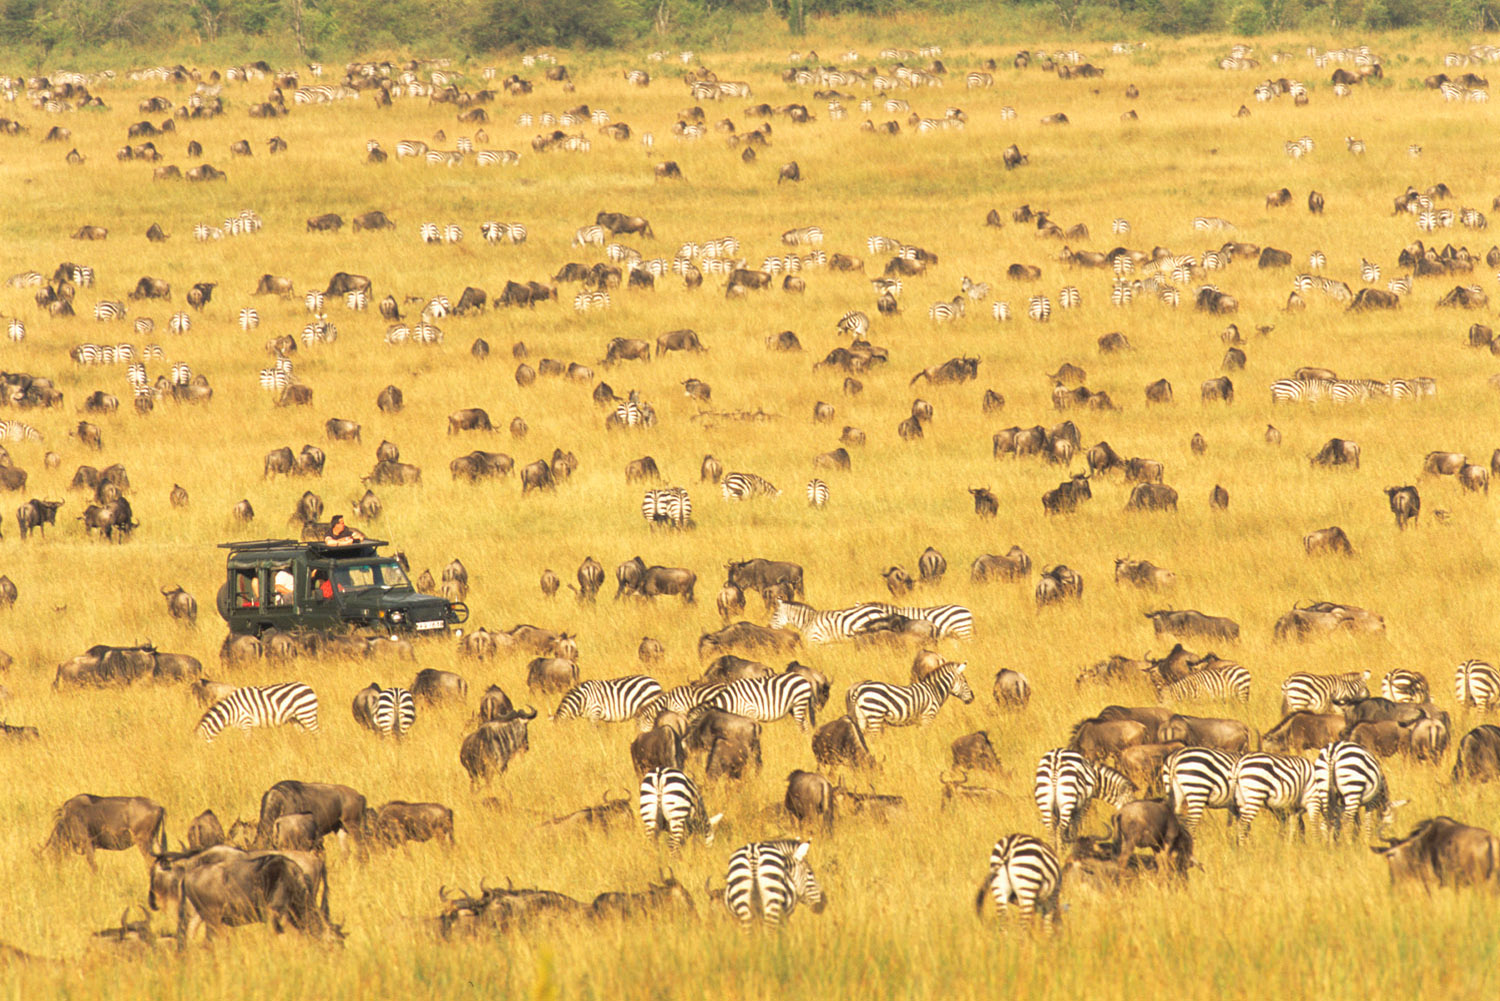 Tourists in Land Cruiser watching wildebeest and common zebras migration, Masai Mara National Reserve, Kenya